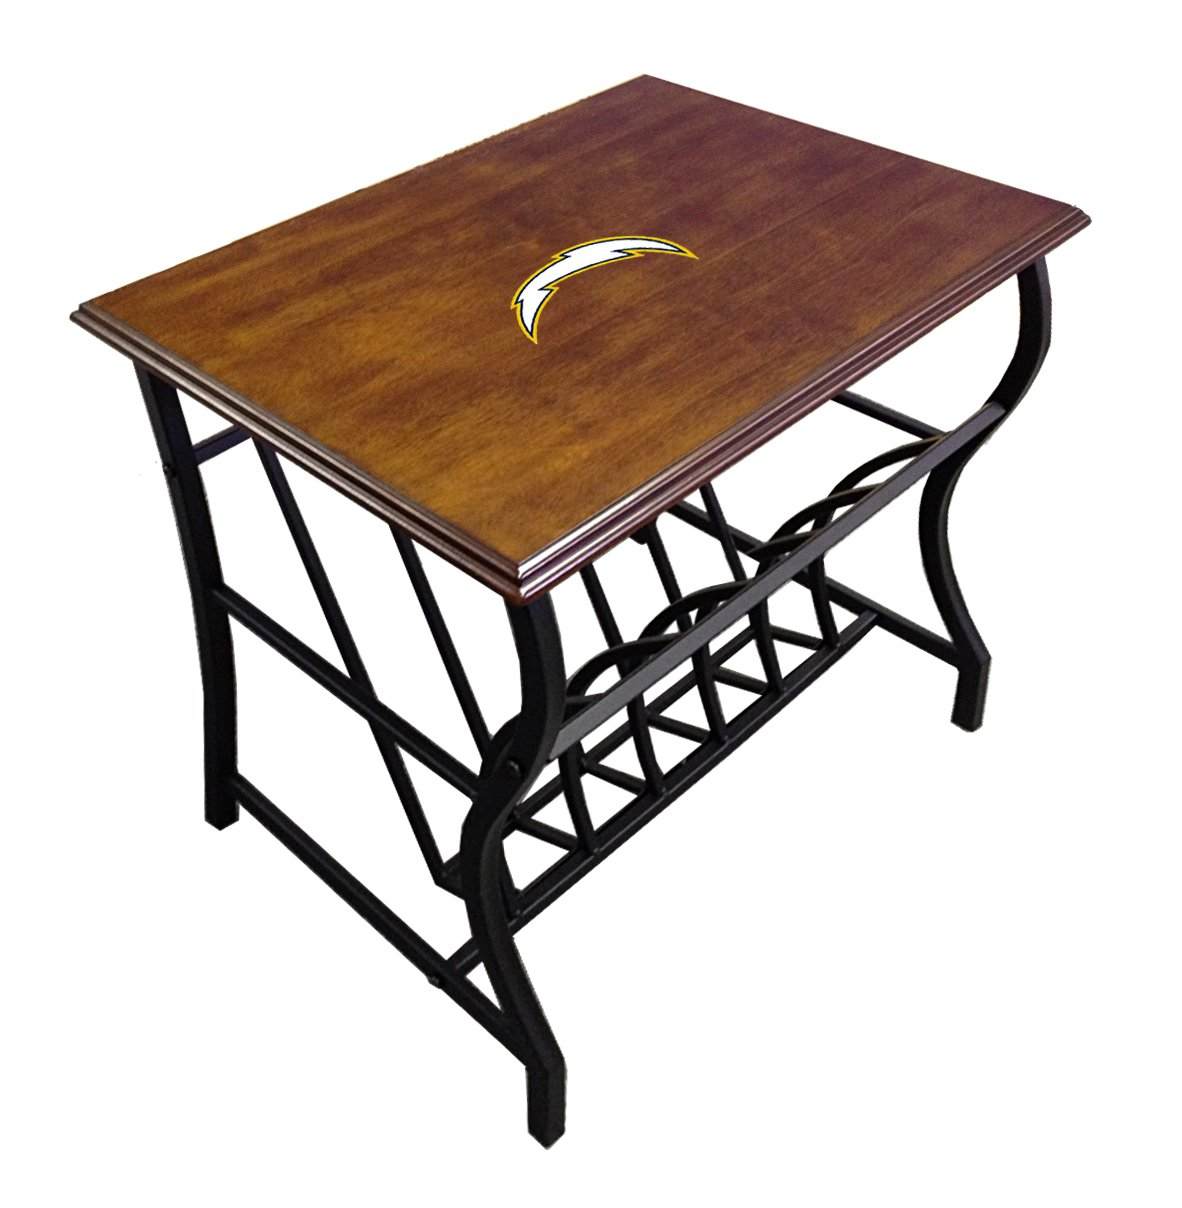 New Oak Finish Side End Table with Bottom Magazine Rack and Your Choice of a Football Team Logo Theme! (Chargers)